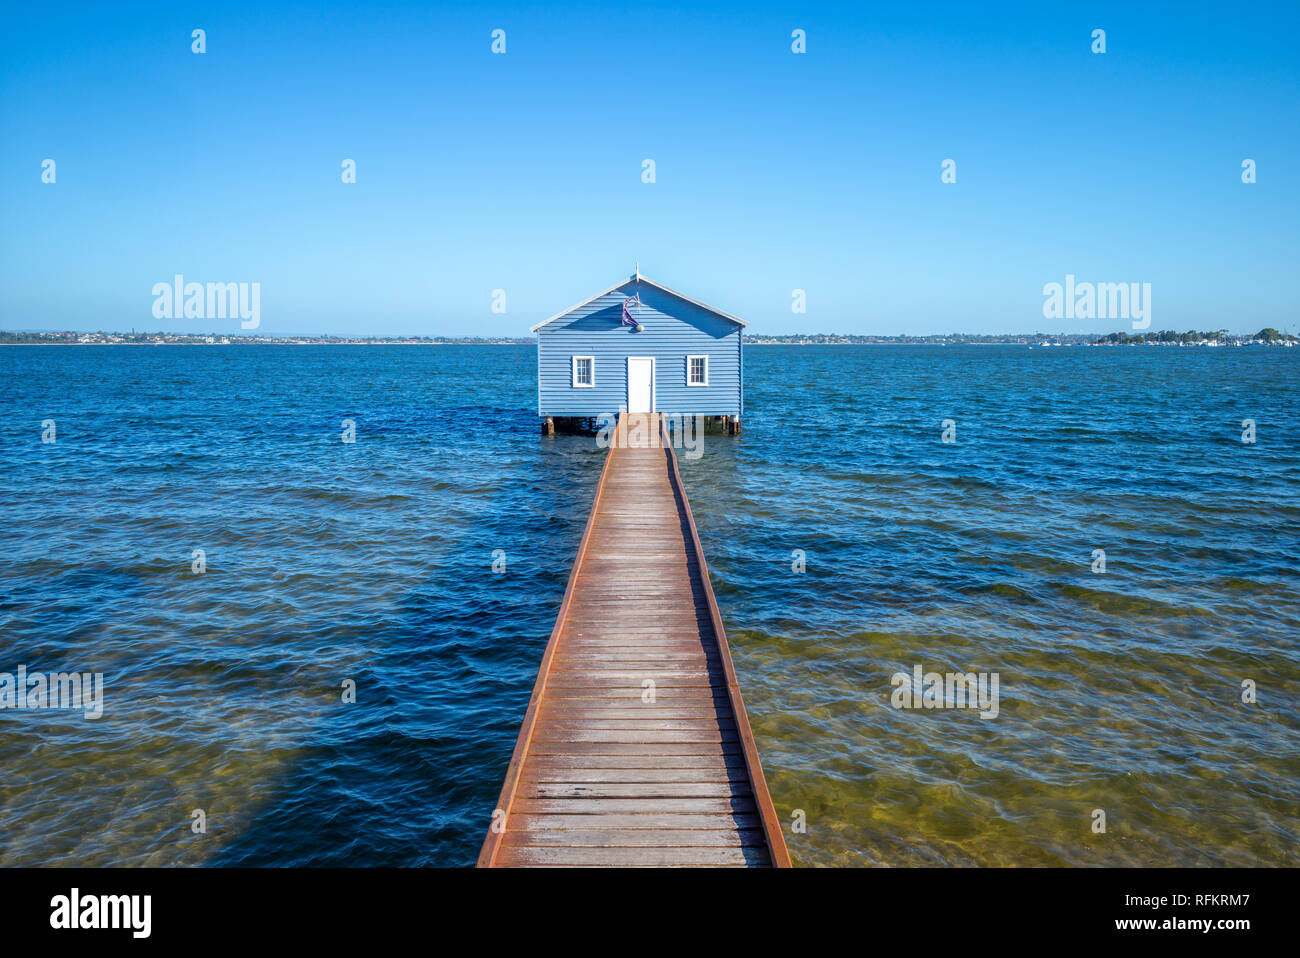 Crawley Edge Boatshed, blue boat houes in perth - Stock Image